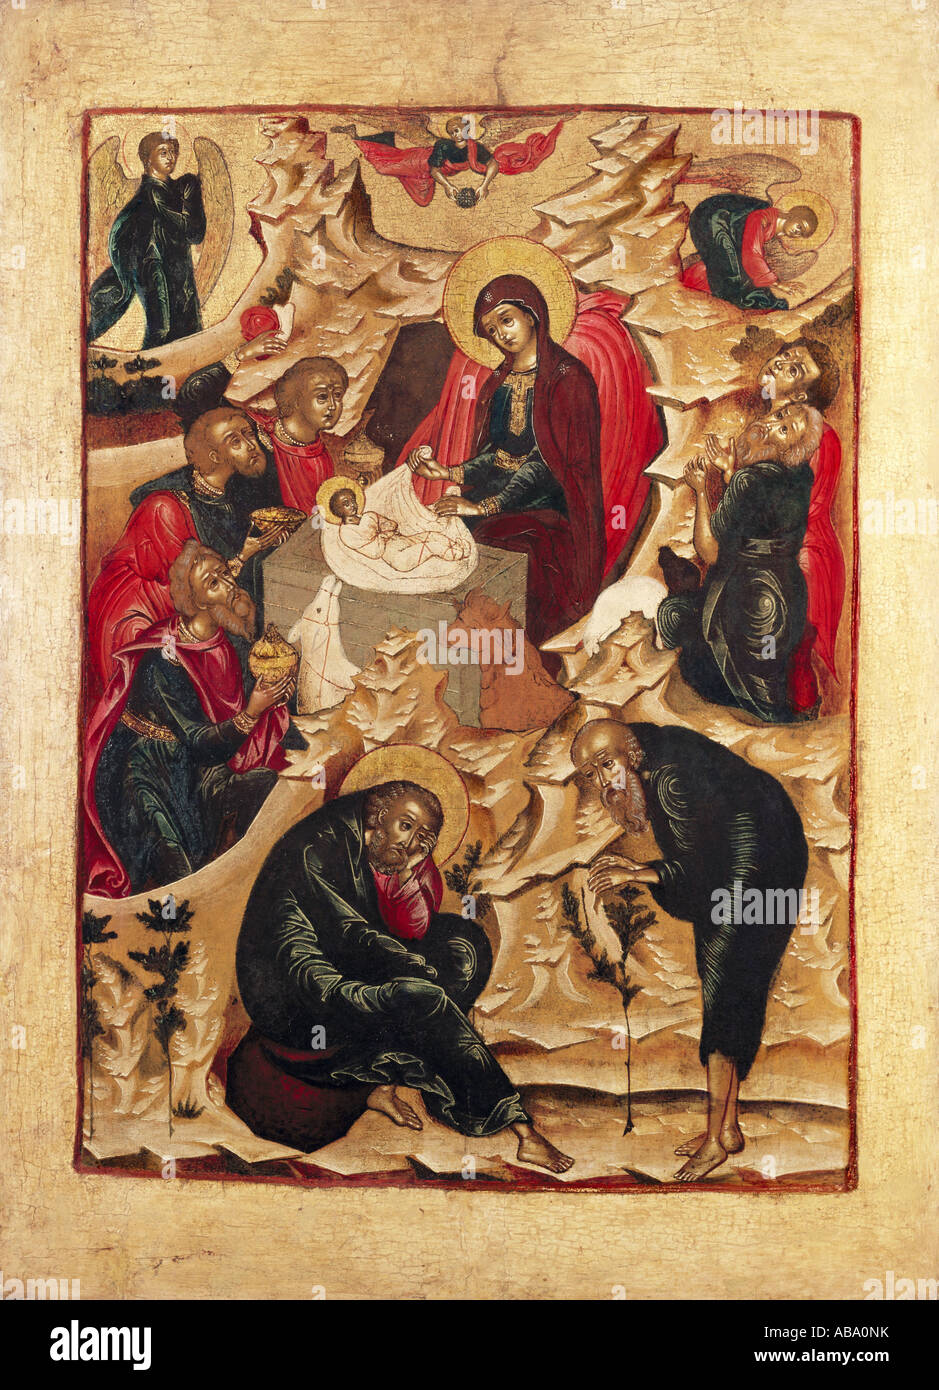 Fine Arts Religious Art Jesus Christ Adoration Of The